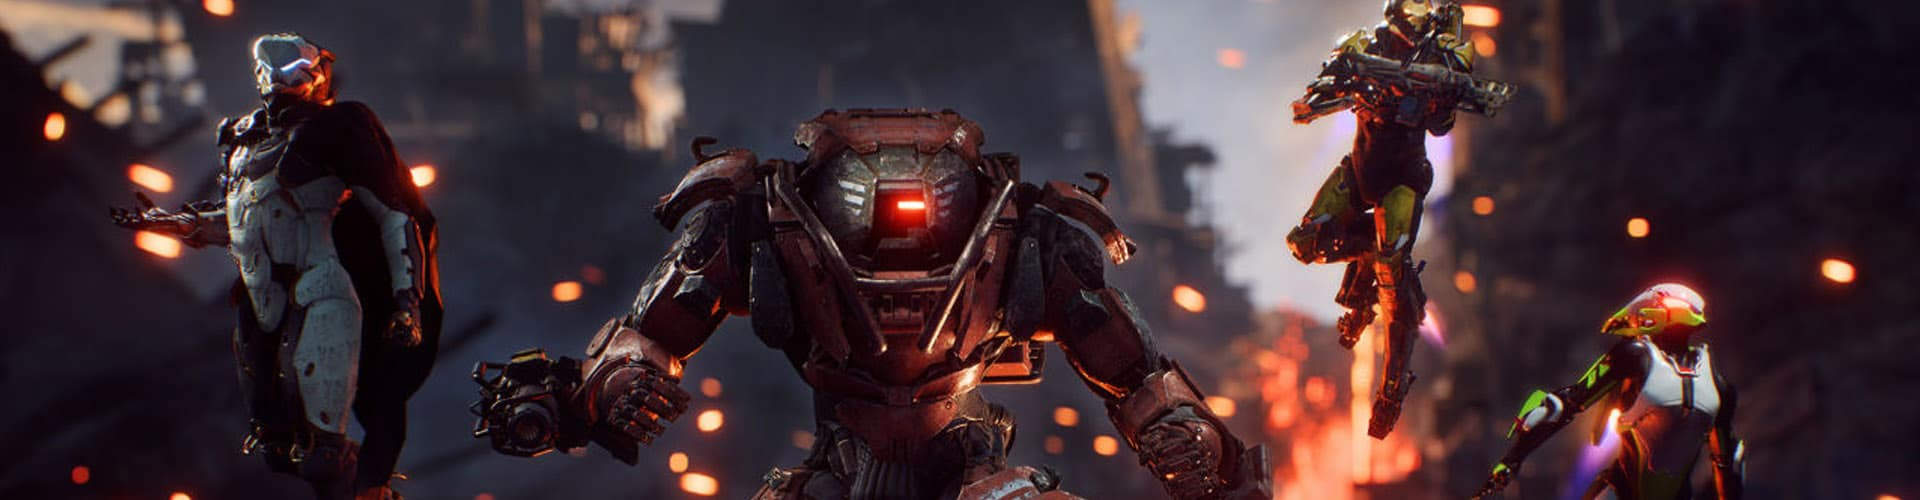 Anthem: Colossus Javelin Guide